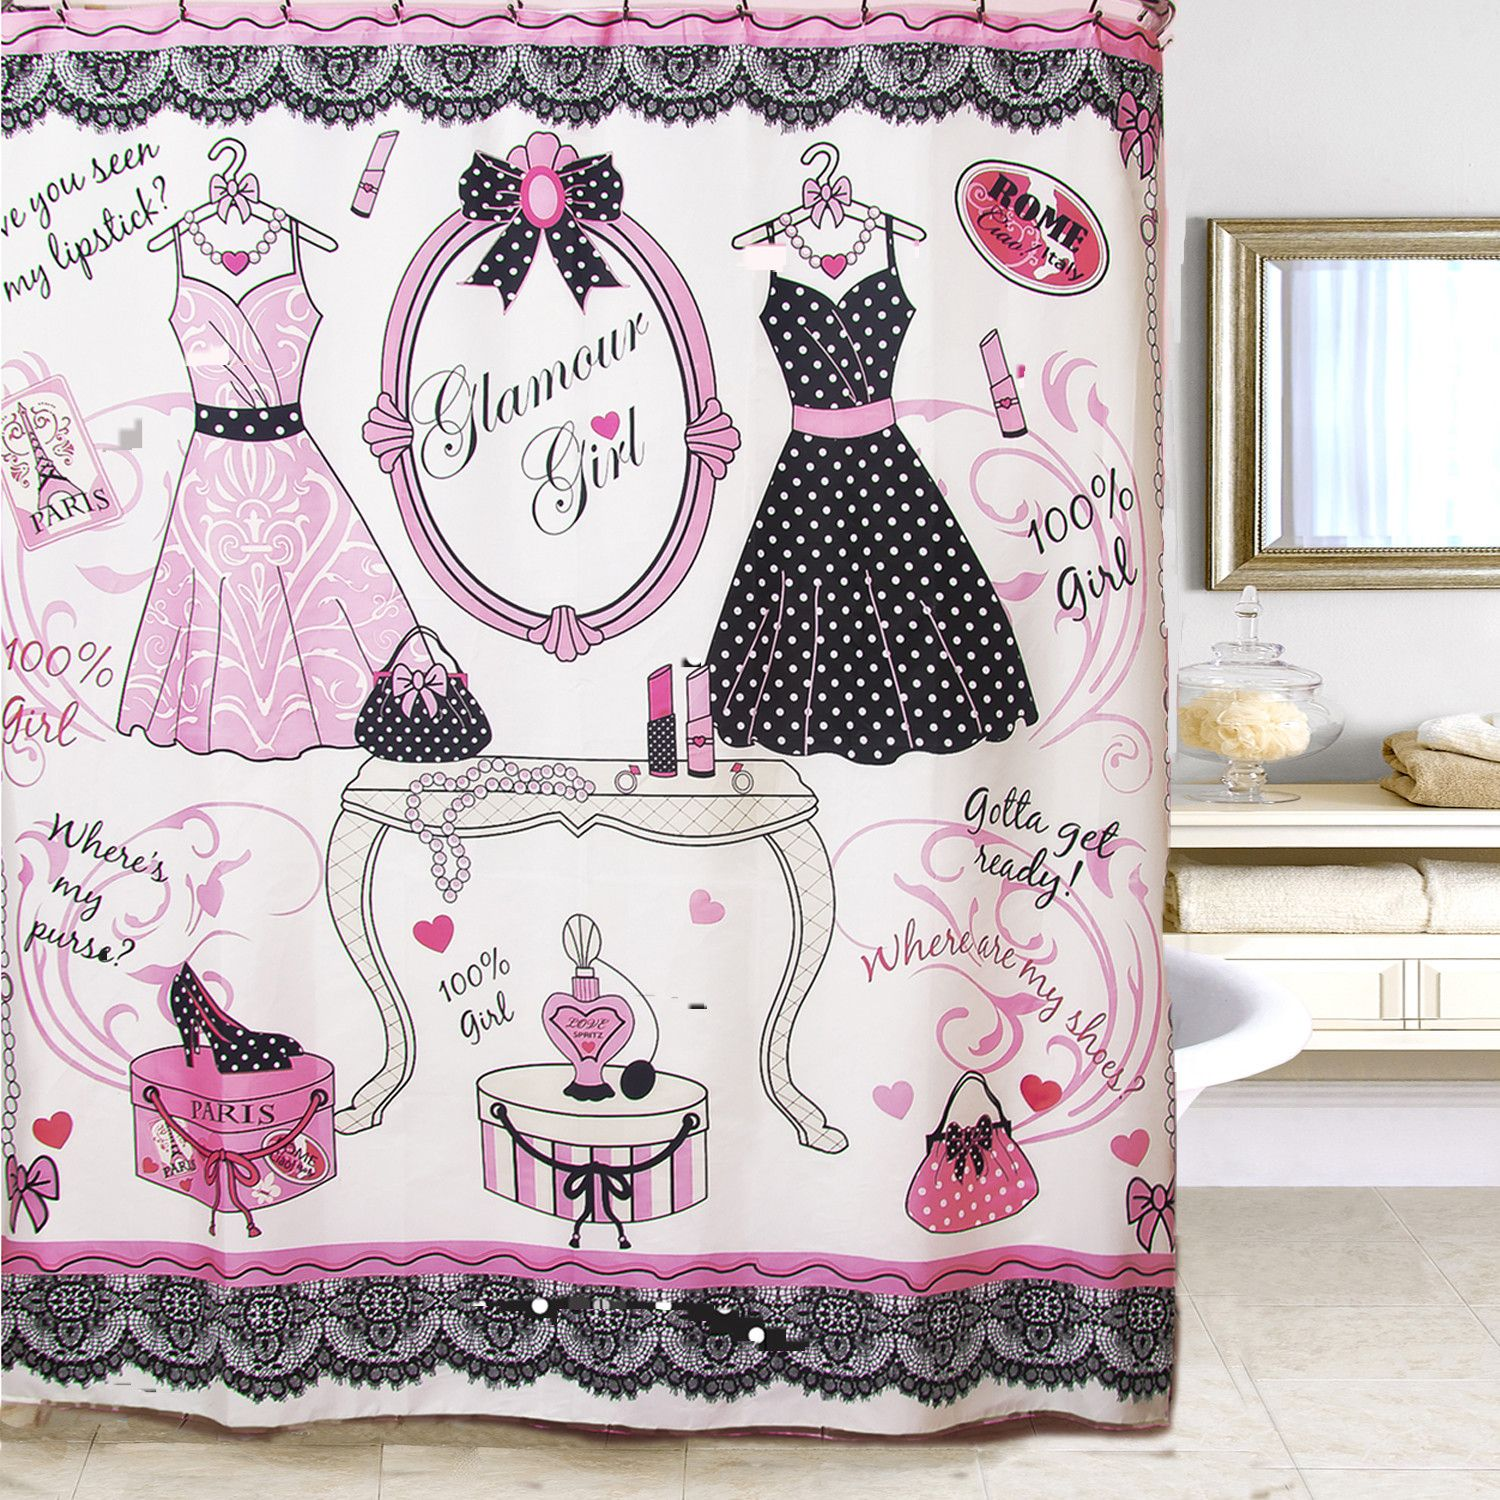 Glamour Shower Curtain | Products | Pinterest | Glamour, Bath ...